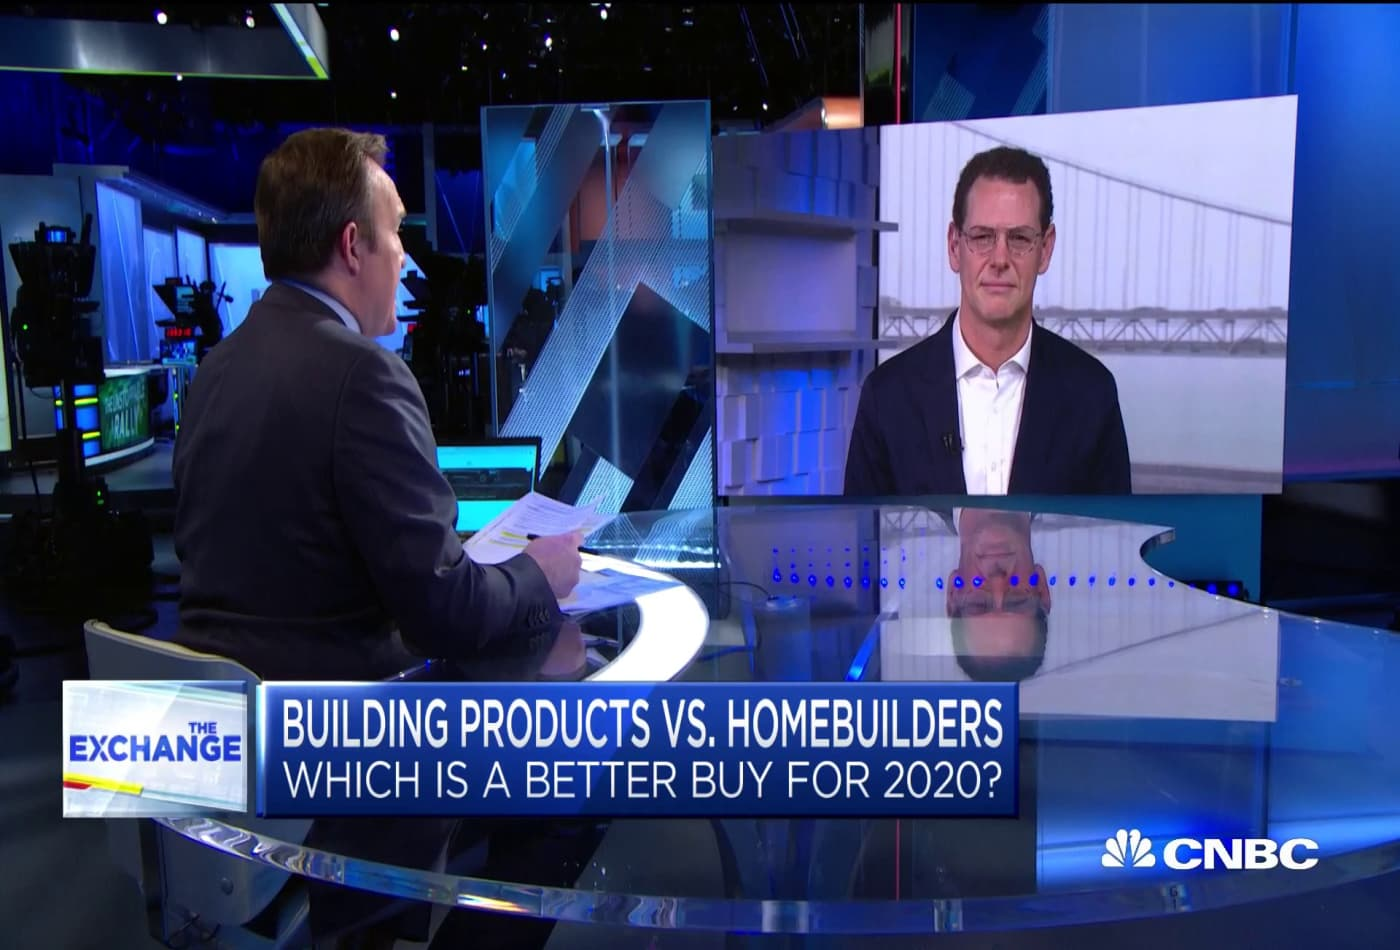 Home prices driving home remodeling: KeyBanc Capital's Ken Zener